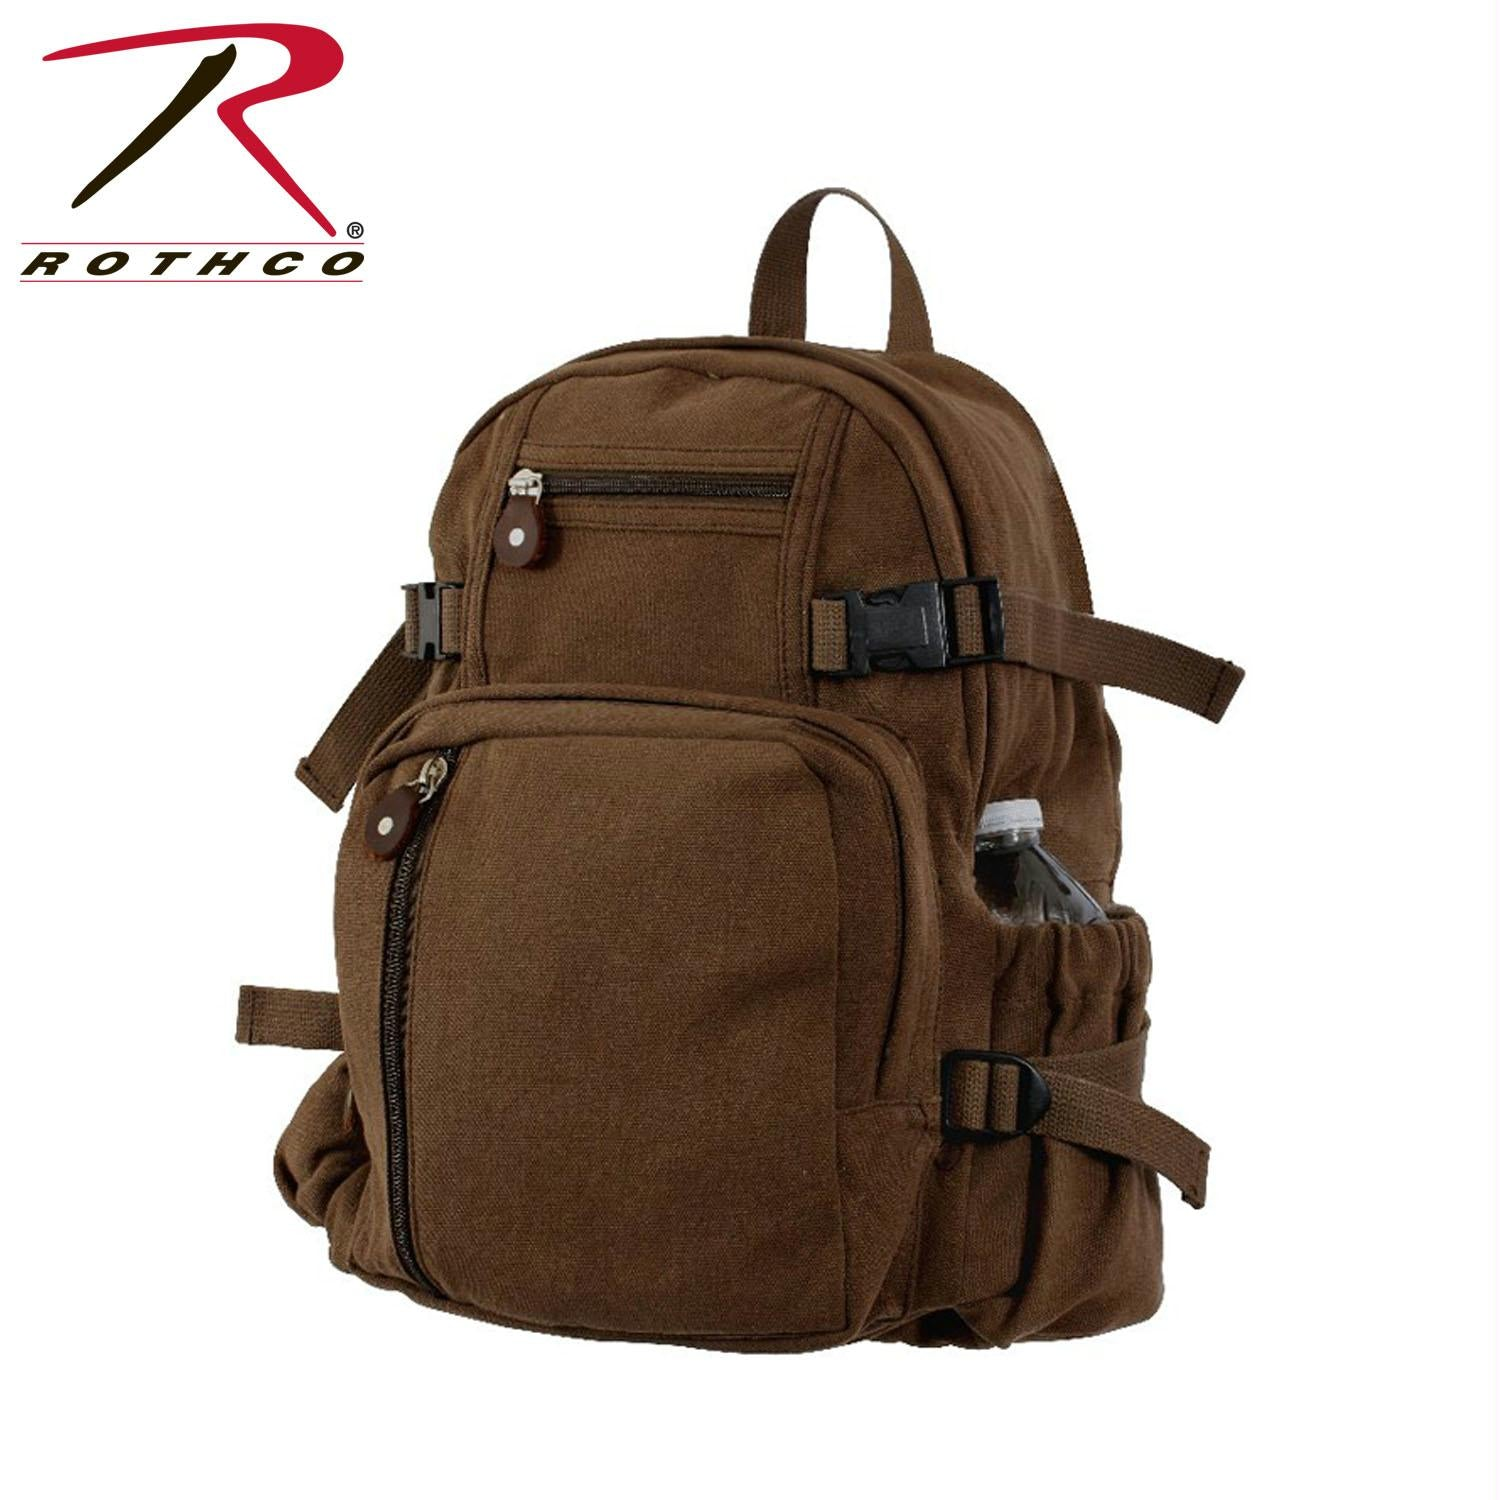 Rothco Vintage Canvas Mini Backpack - Brown